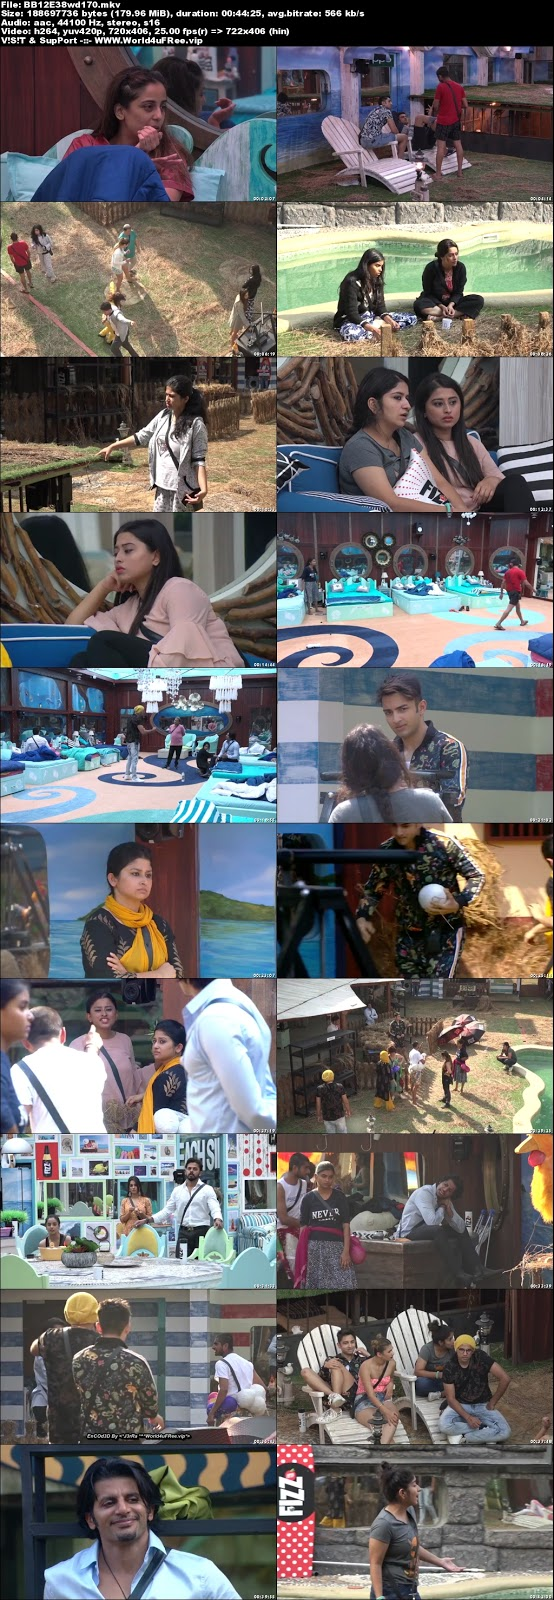 Bigg Boss 12 Episode 38 24 October 2018 WEBRip 480p 170Mb x264 world4ufree.vip tv show Episode 38 24 October 2018 world4ufree.vip 200mb 250mb 300mb compressed small size free download or watch online at world4ufree.vip